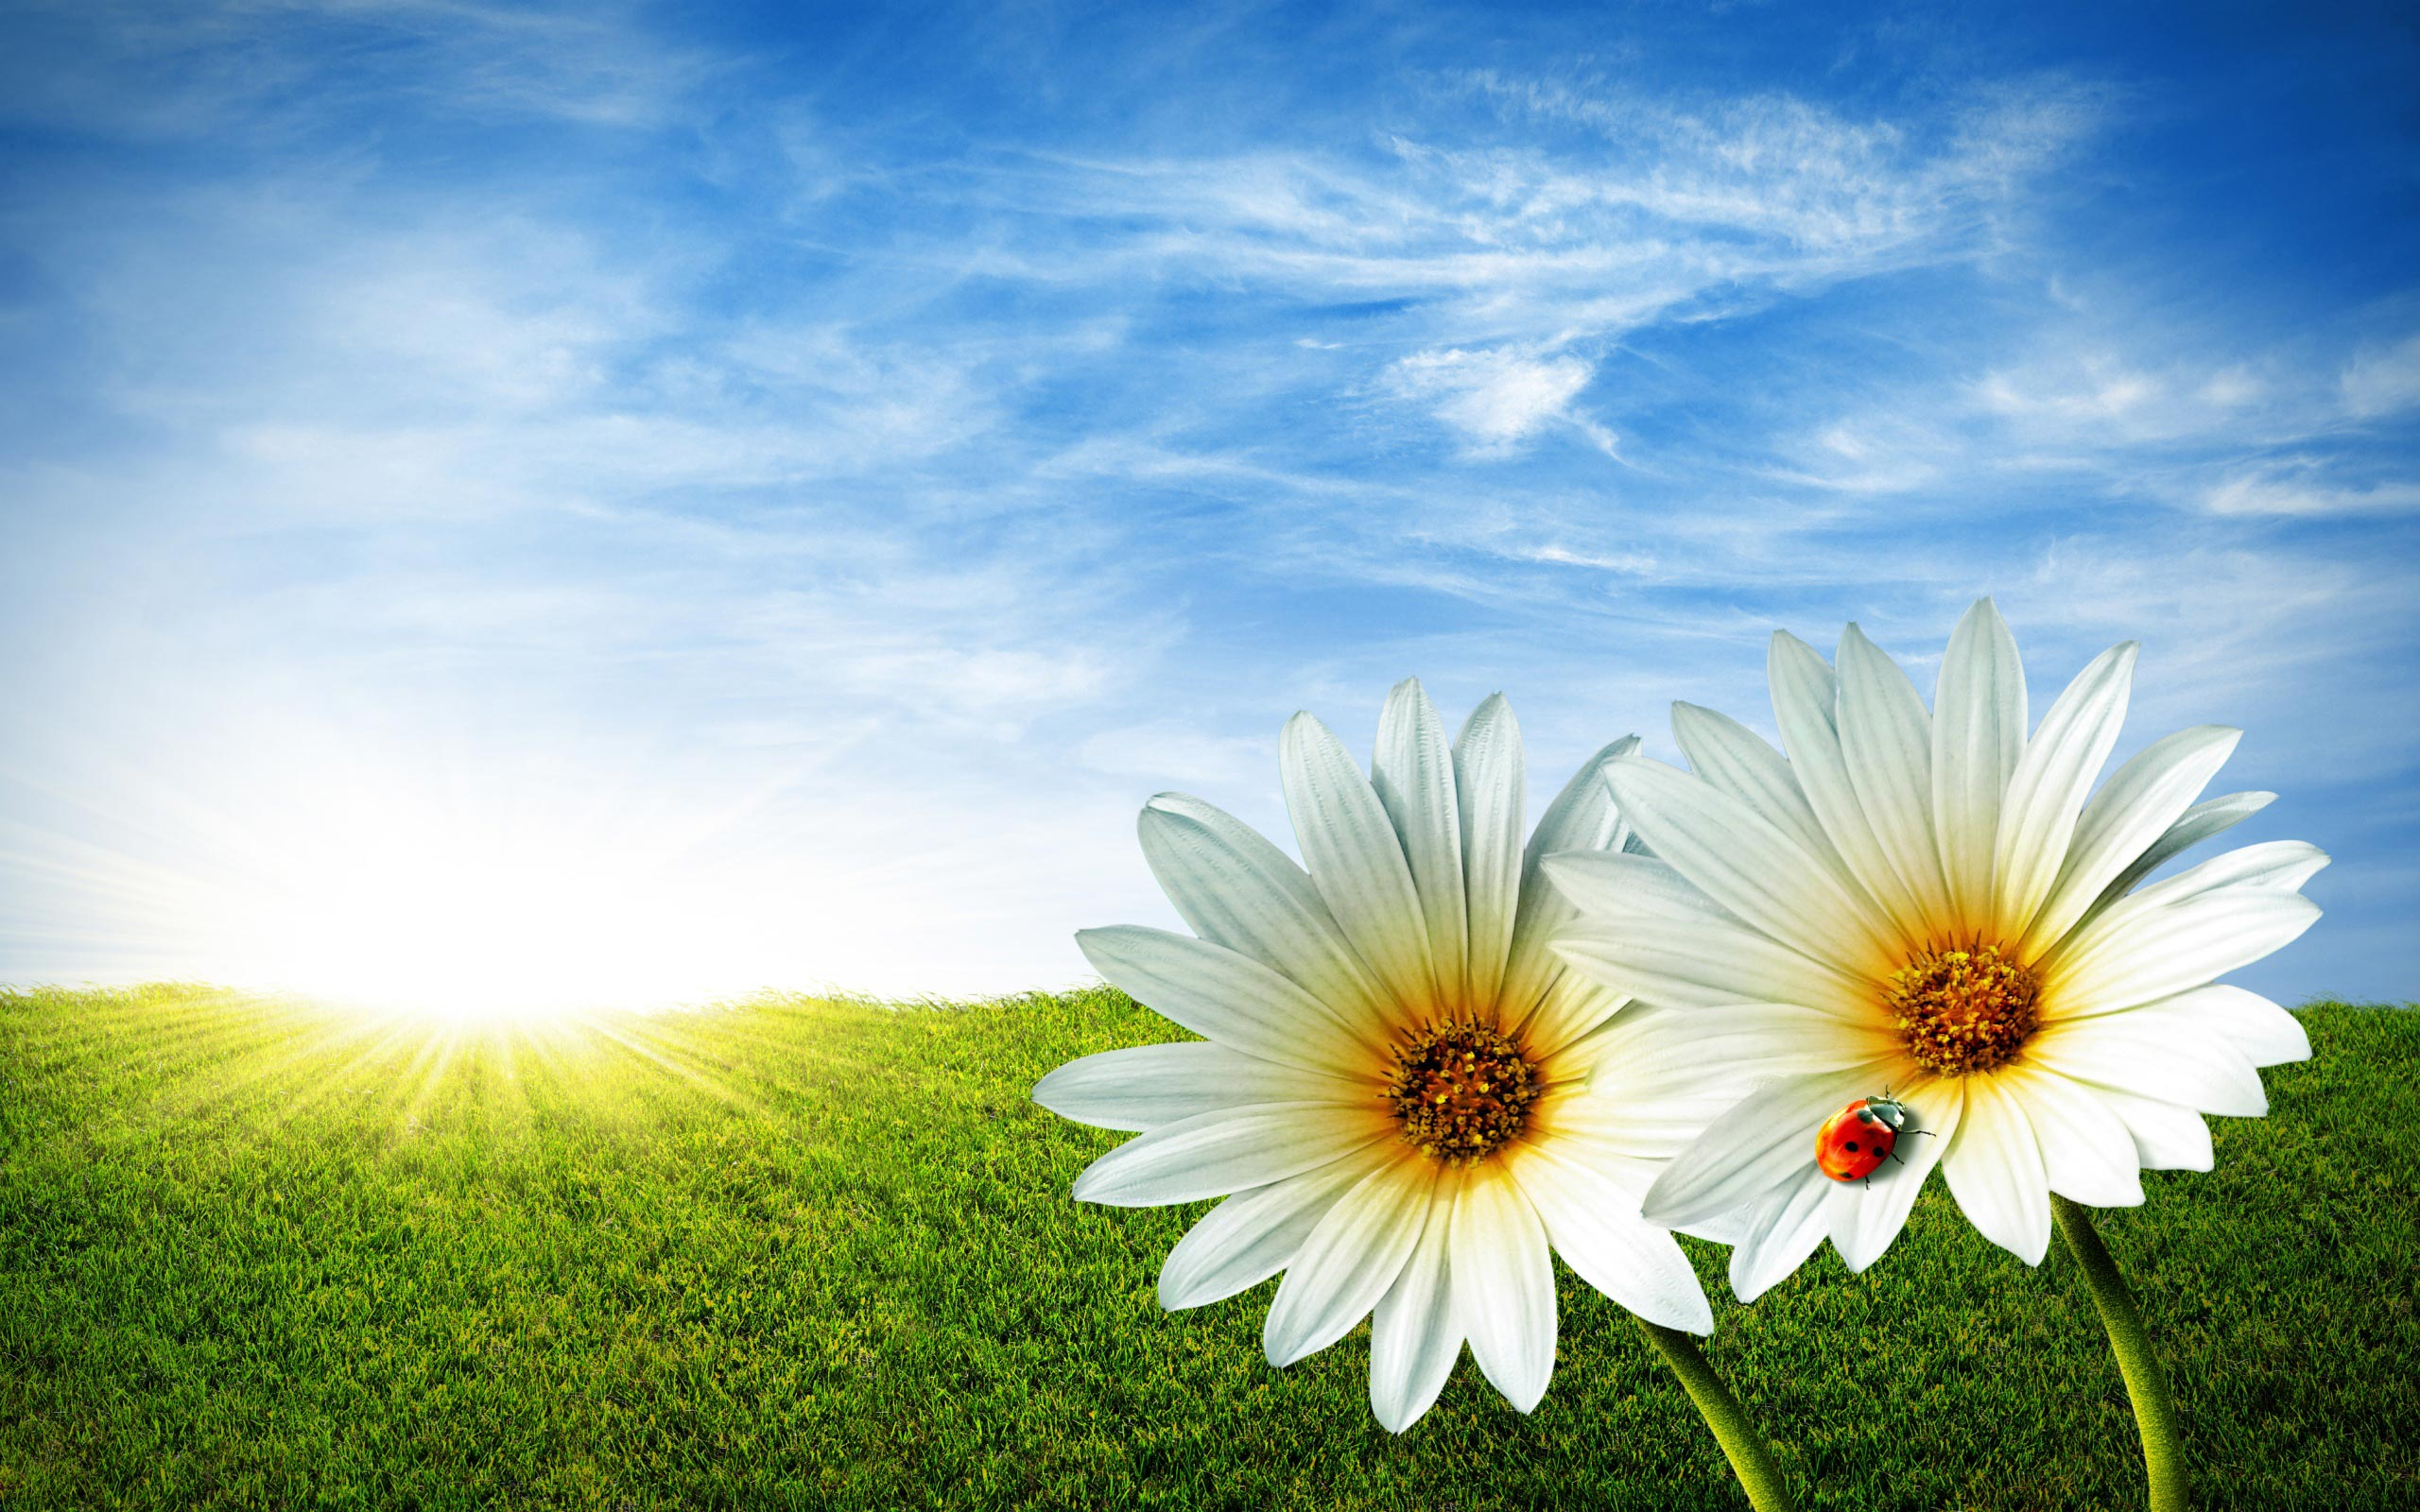 flowers, spring and sun